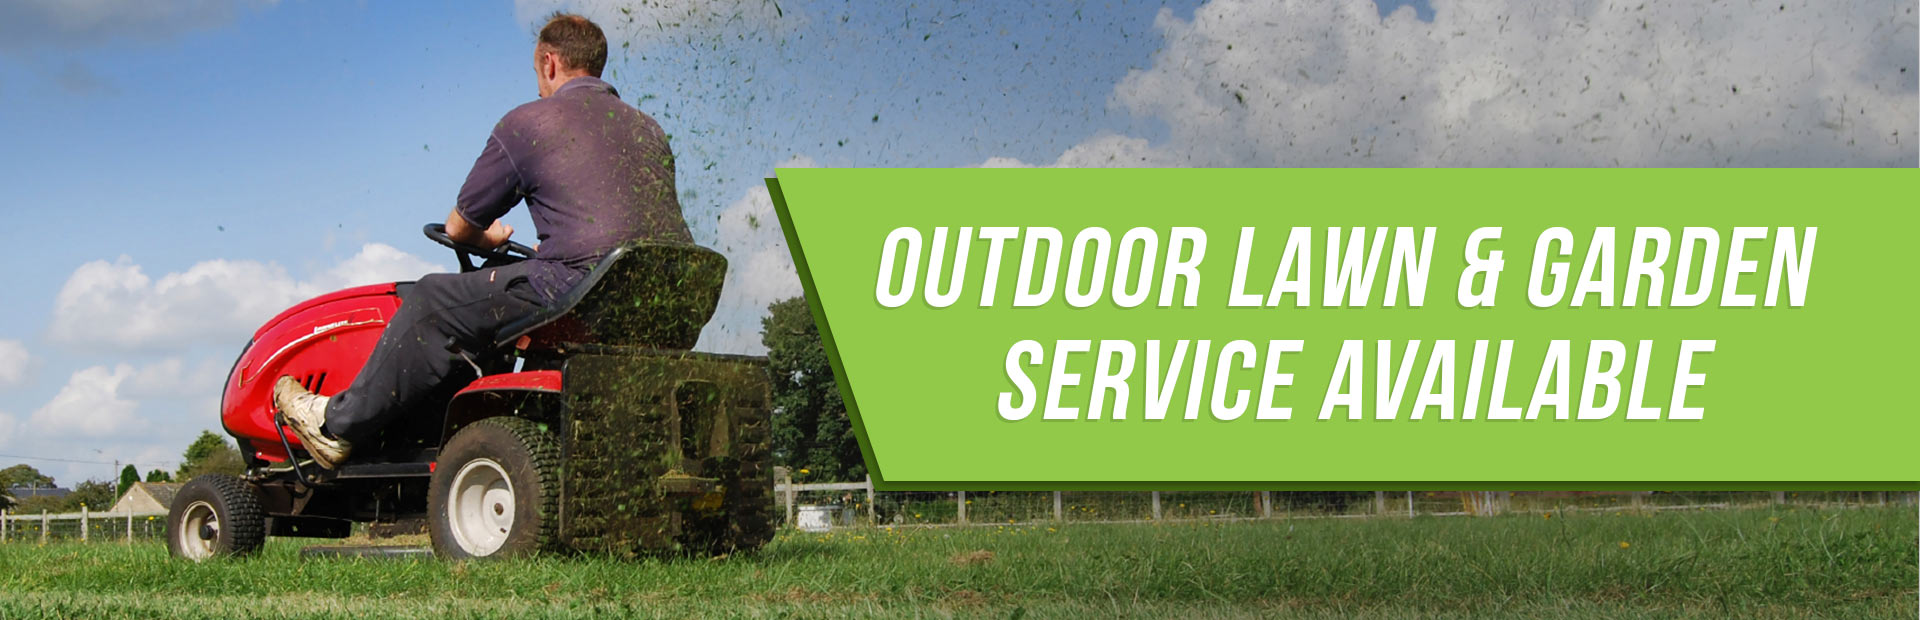 Outdoor lawn and garden is service available!